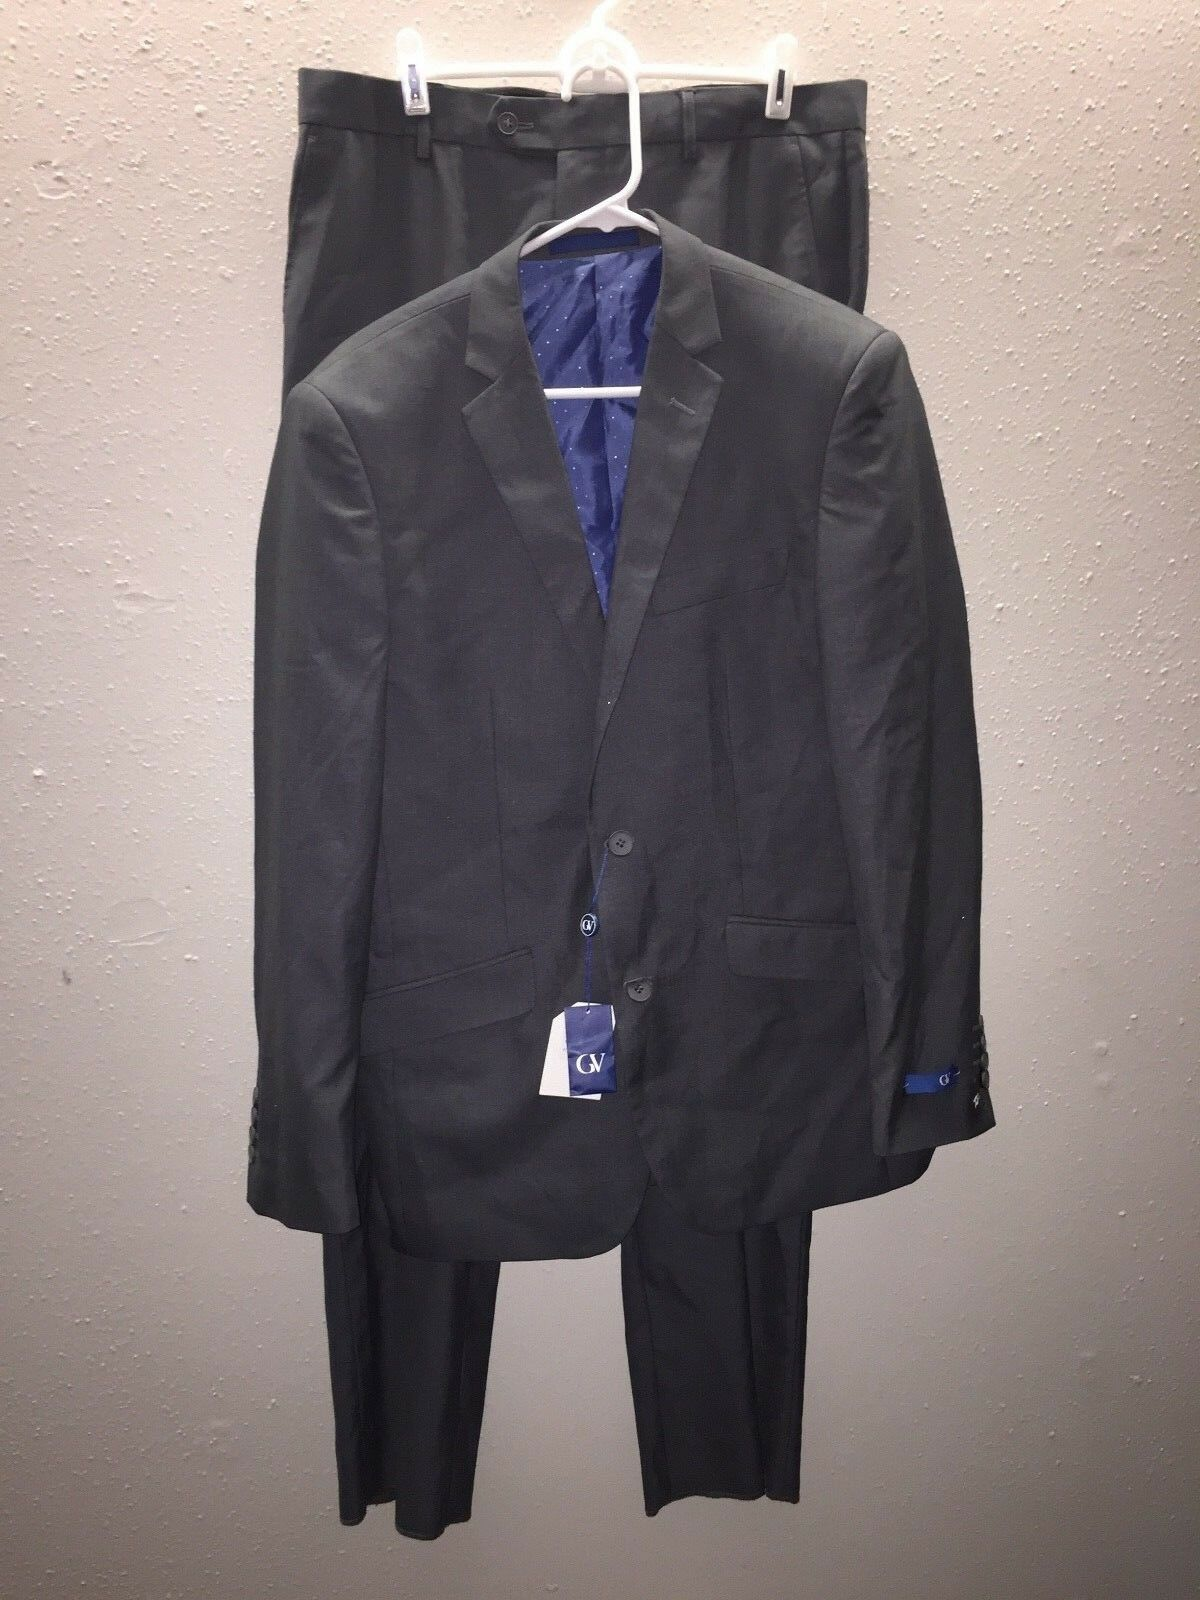 Gino Vitale 2pcs Slim Solid Charcoal Two Button Tuxedo Suit - 40R/34W